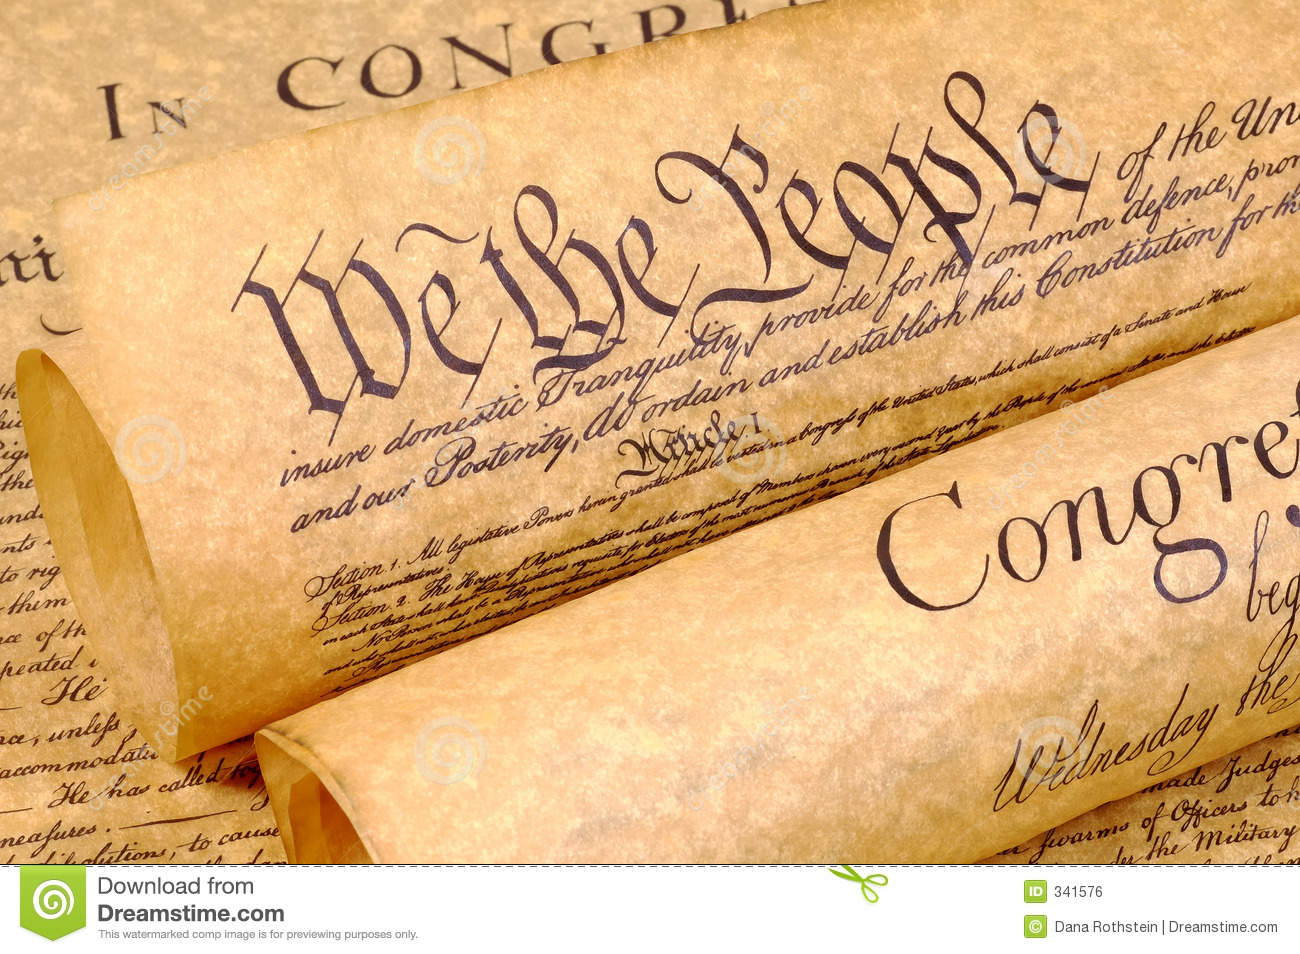 Declaration of independence clipart free.